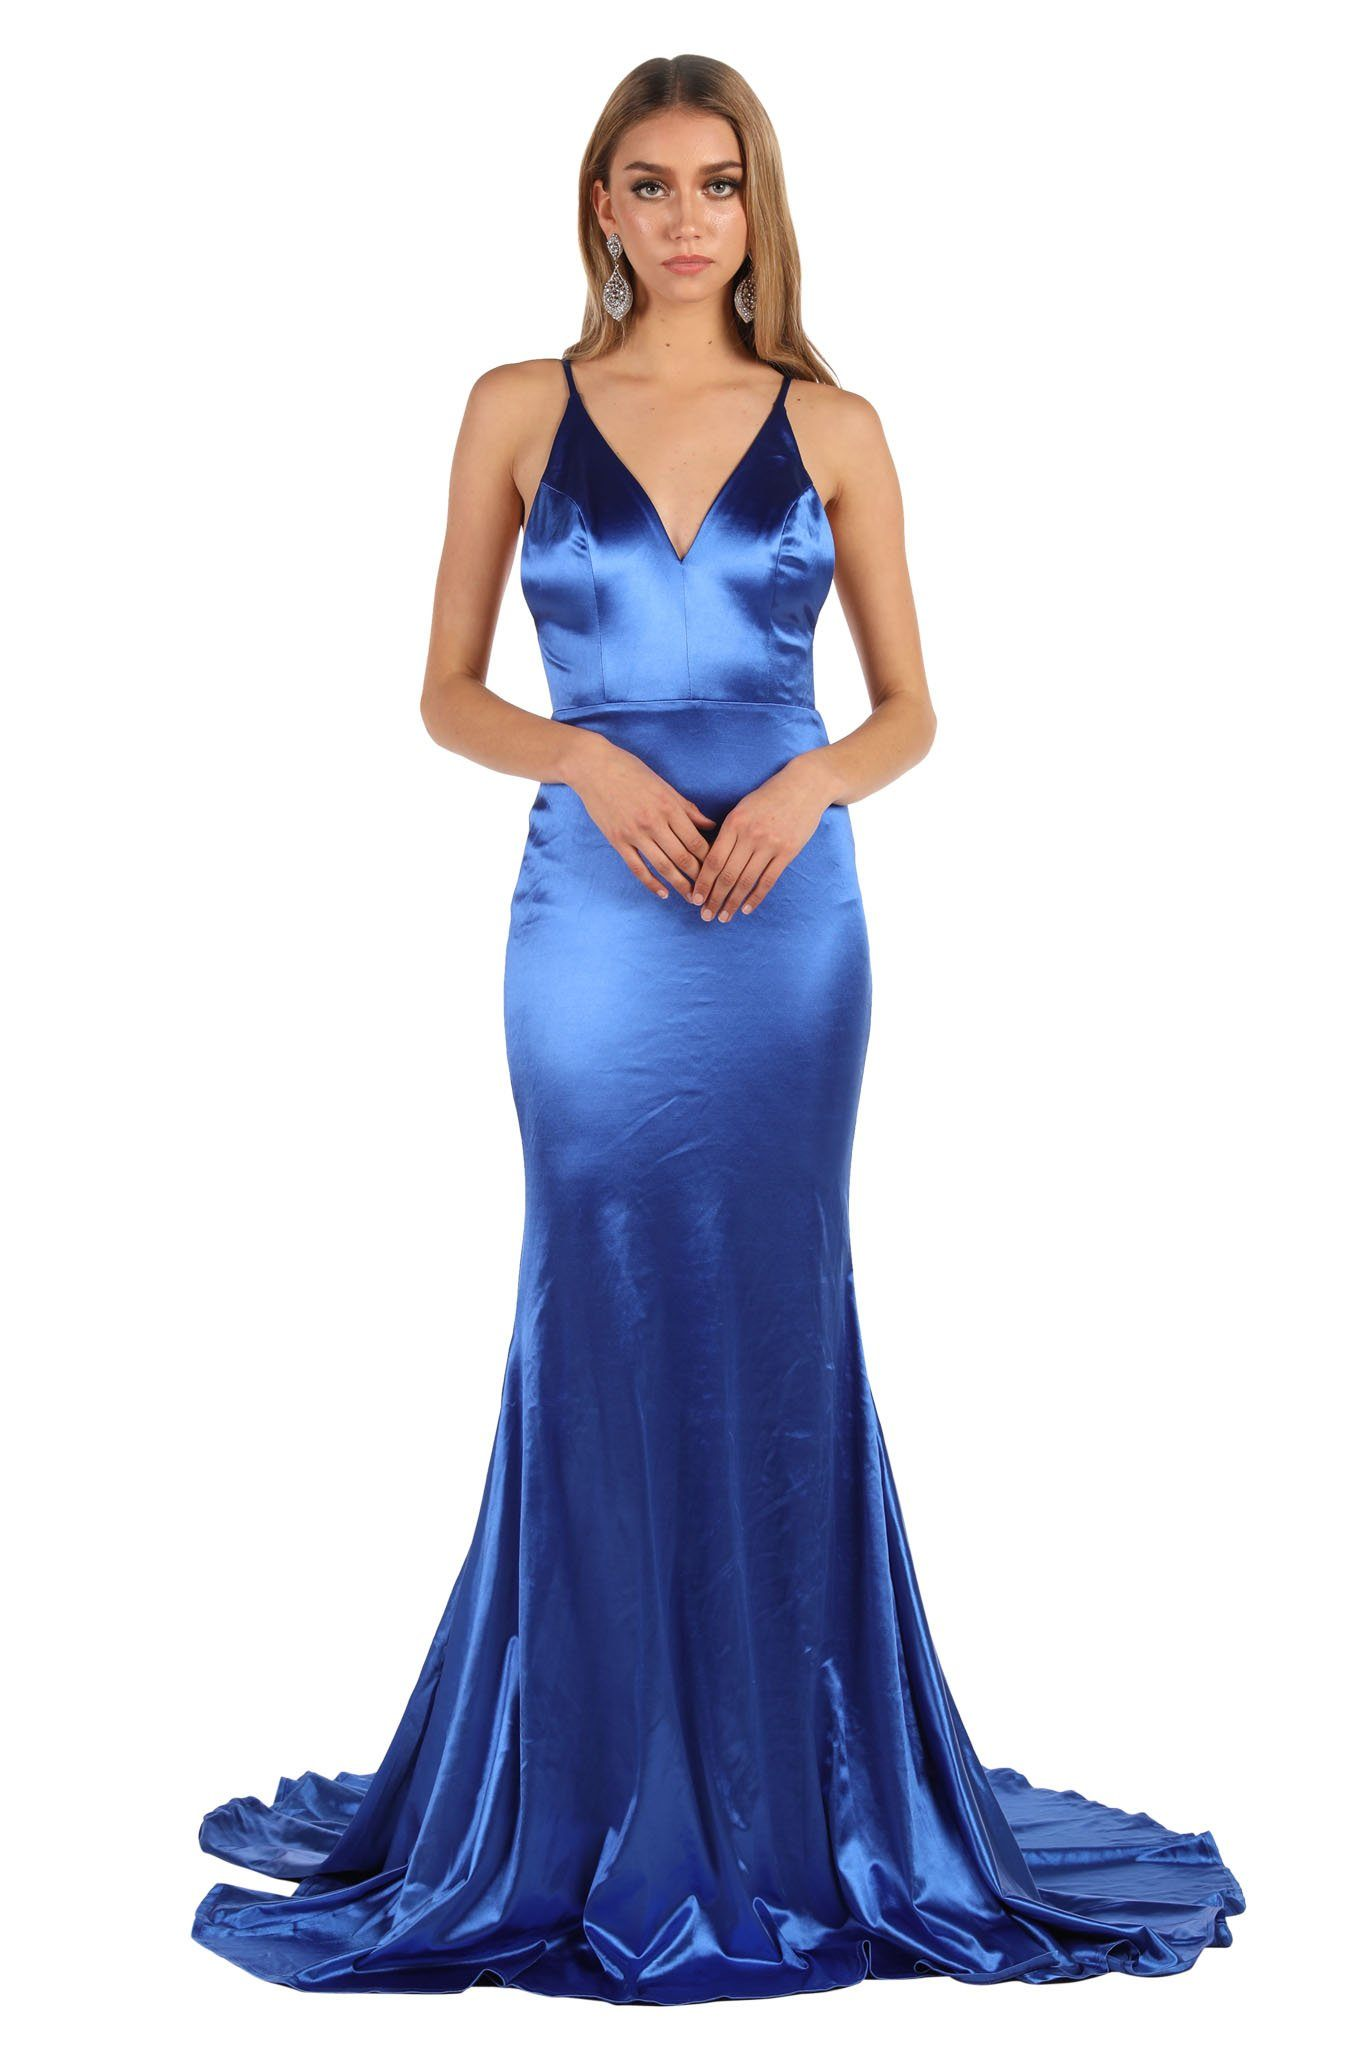 Royal Blue Stretchy Satin Gown with Deep V Neck, Ruched V Open Back and Mermaid Train